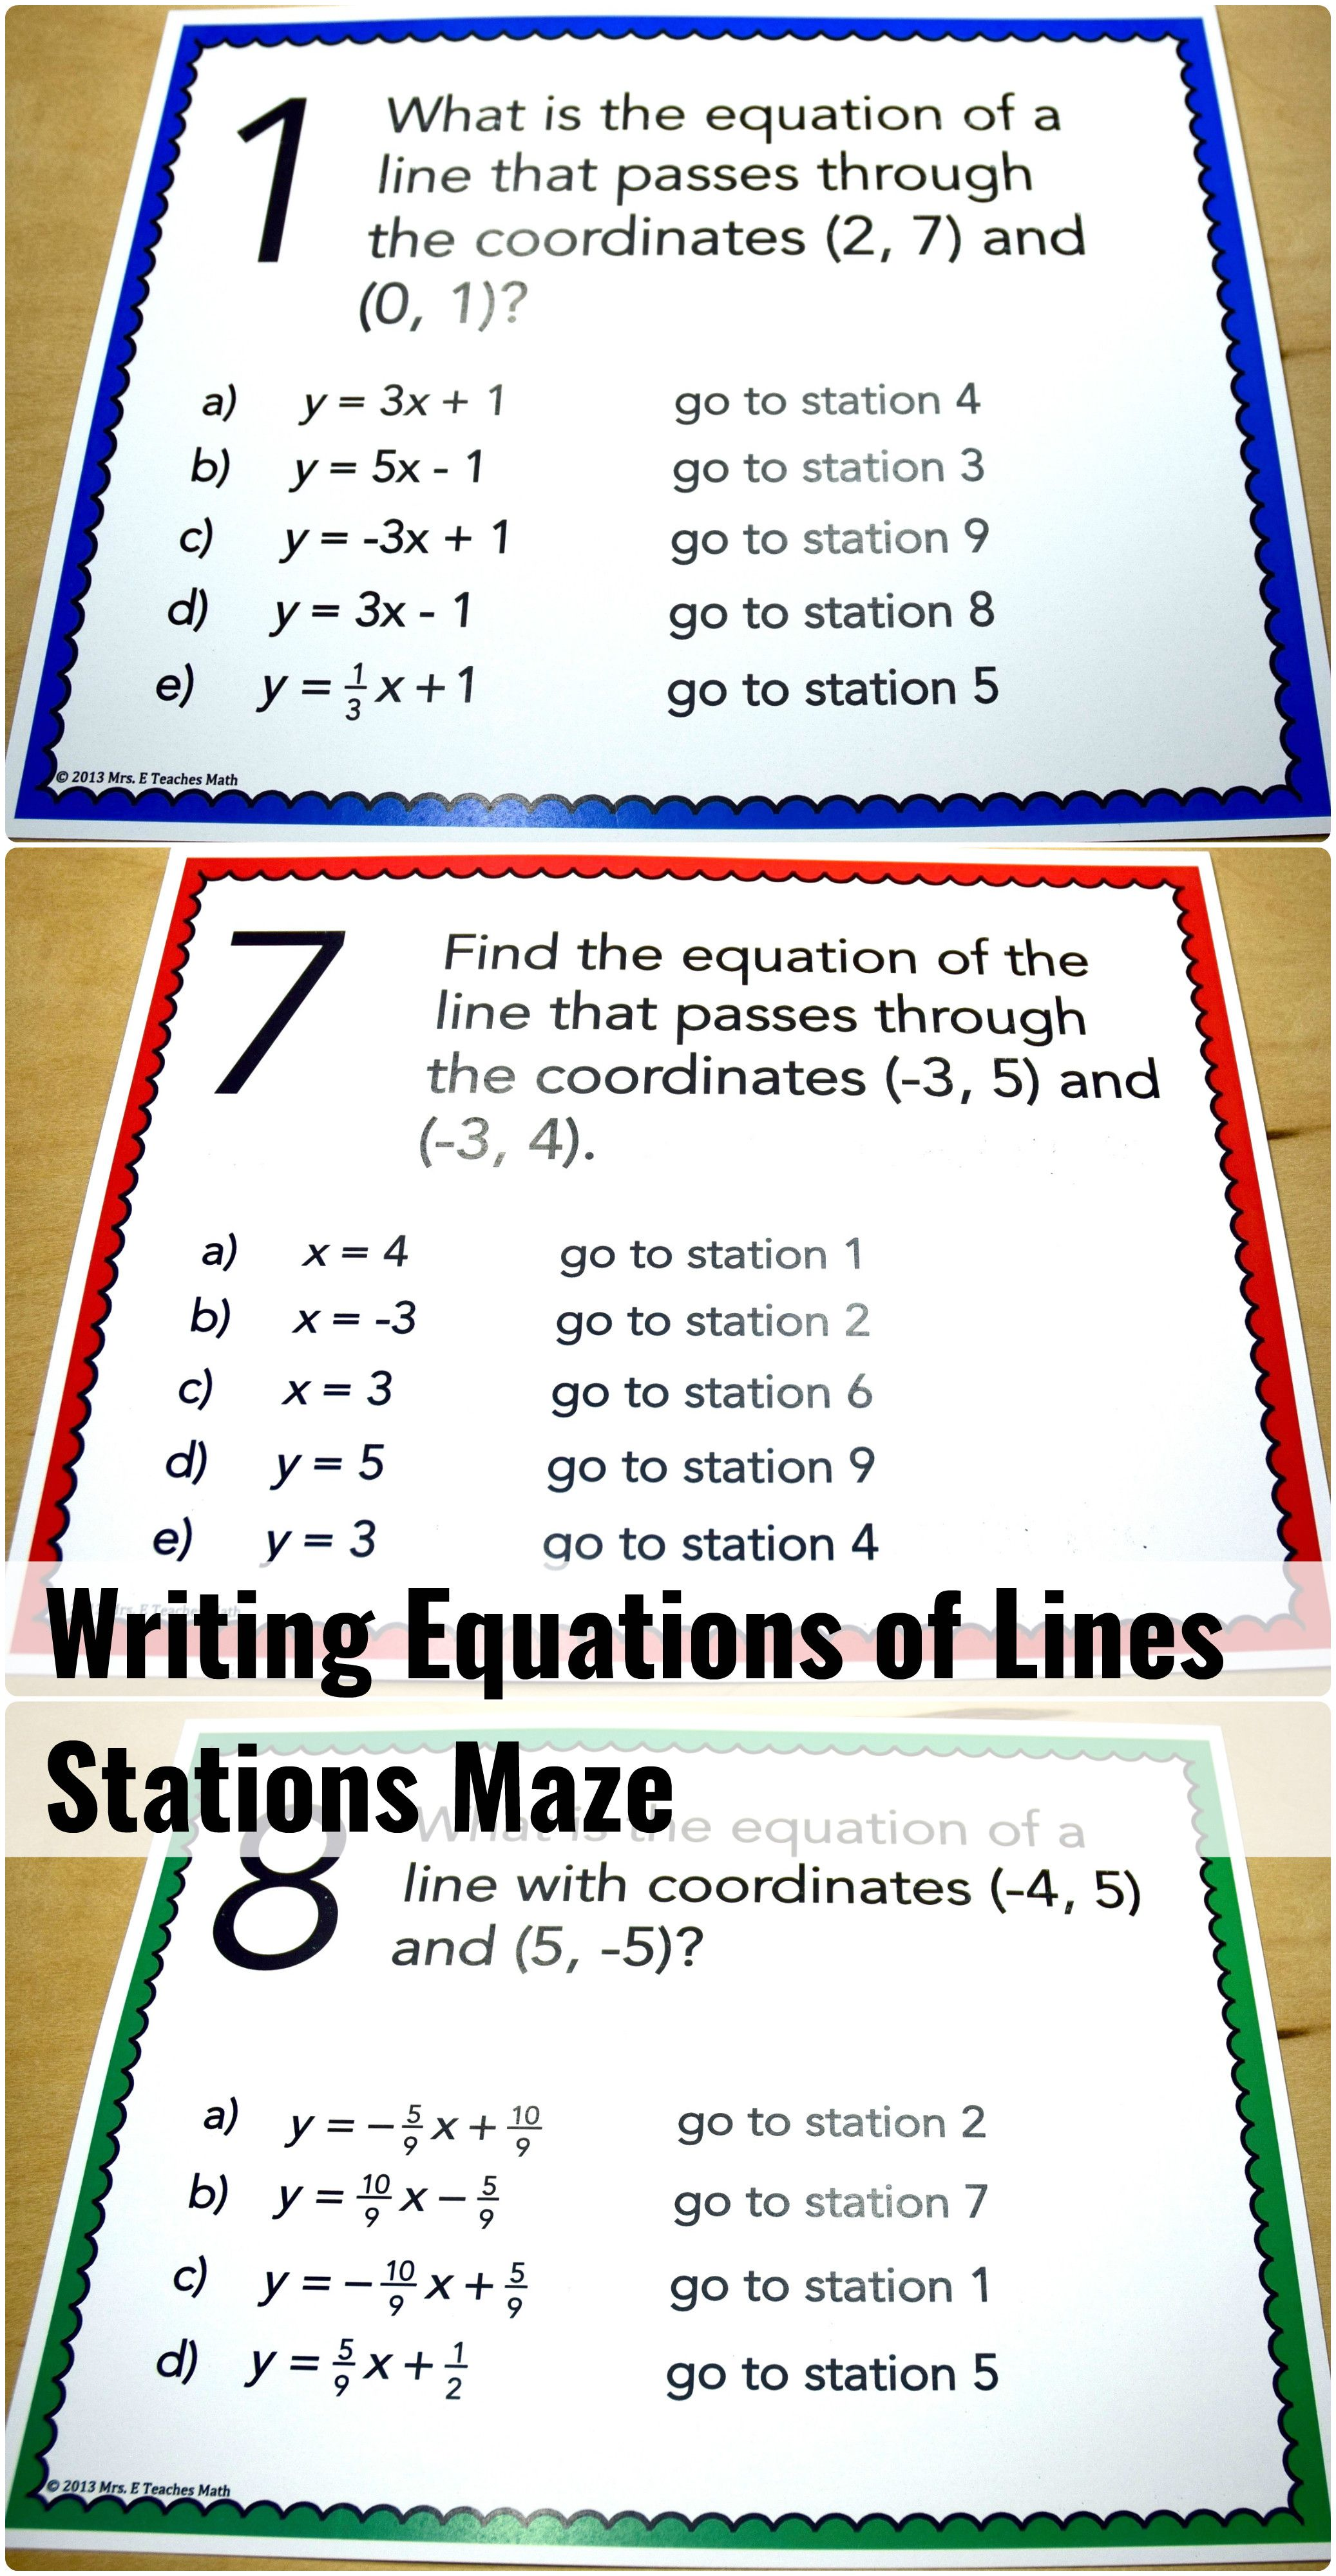 Writing Equations Of Lines Stations Maze Activity